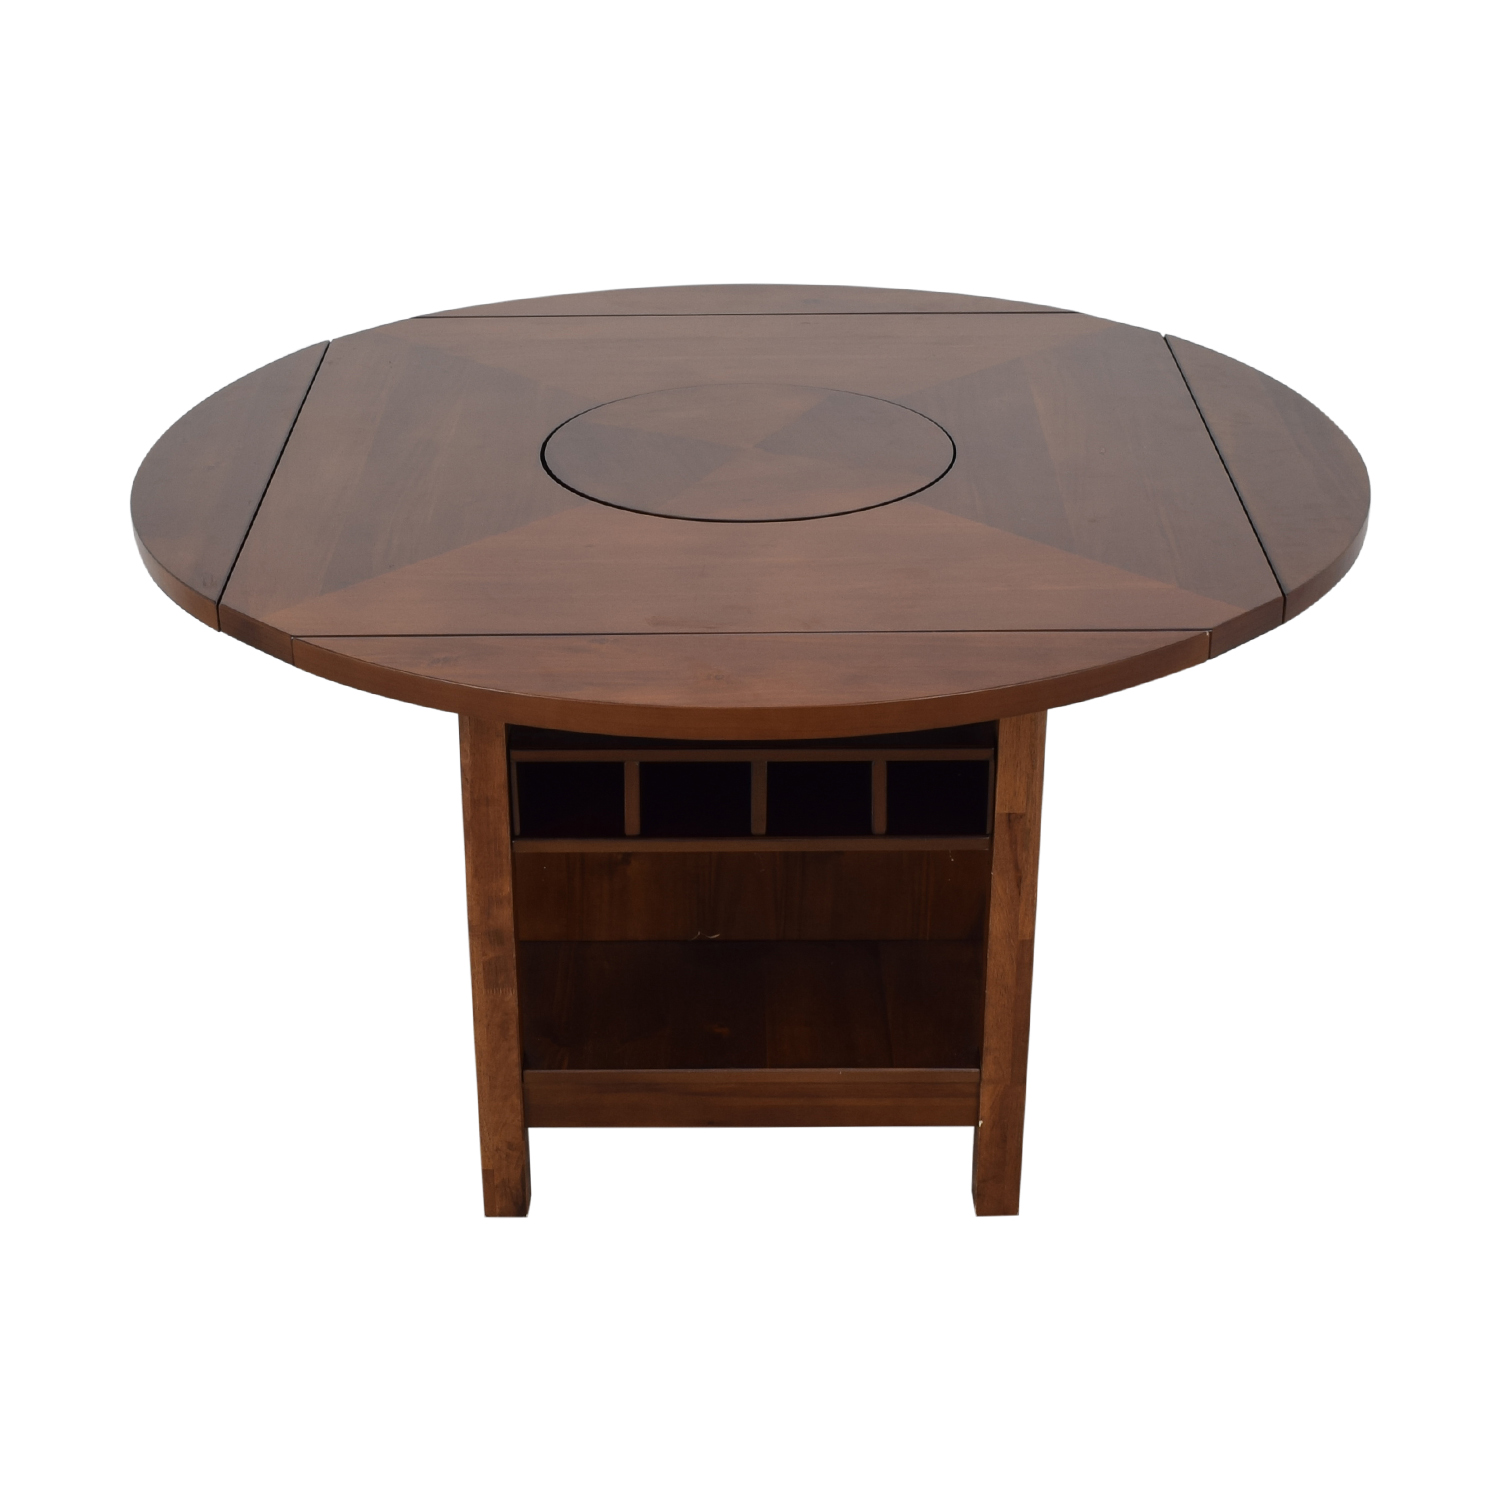 CrownMark Furniture CrownMark Conner Counter Height Table with Wine Storage dimensions